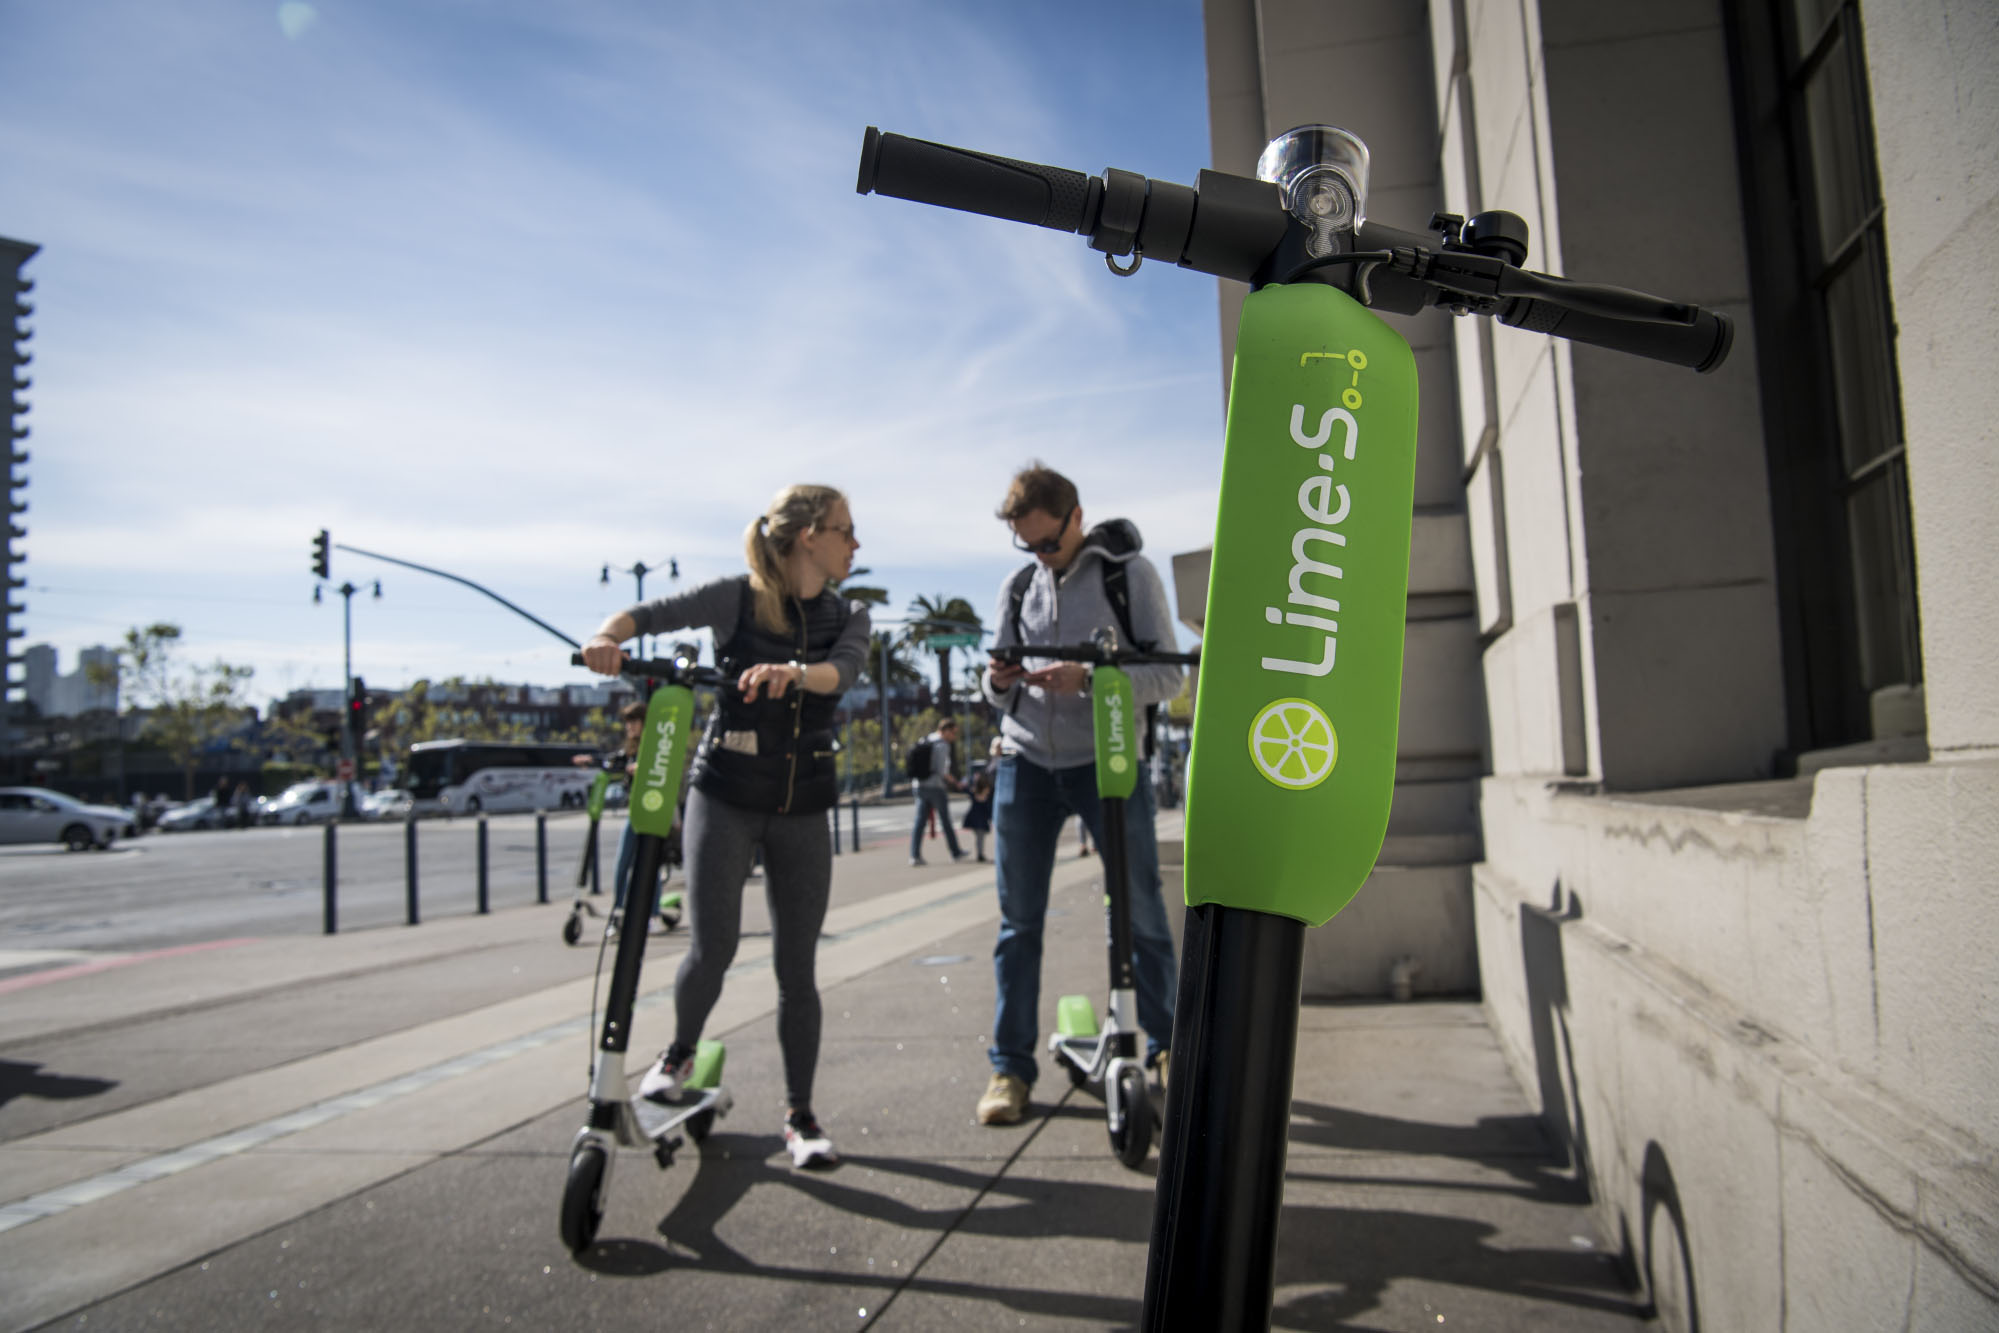 People use a smartphone to LimeBike shared electric scooters on the Embarcadero in San Francisco. MUST CREDIT: Bloomberg photo by David Paul Morris.